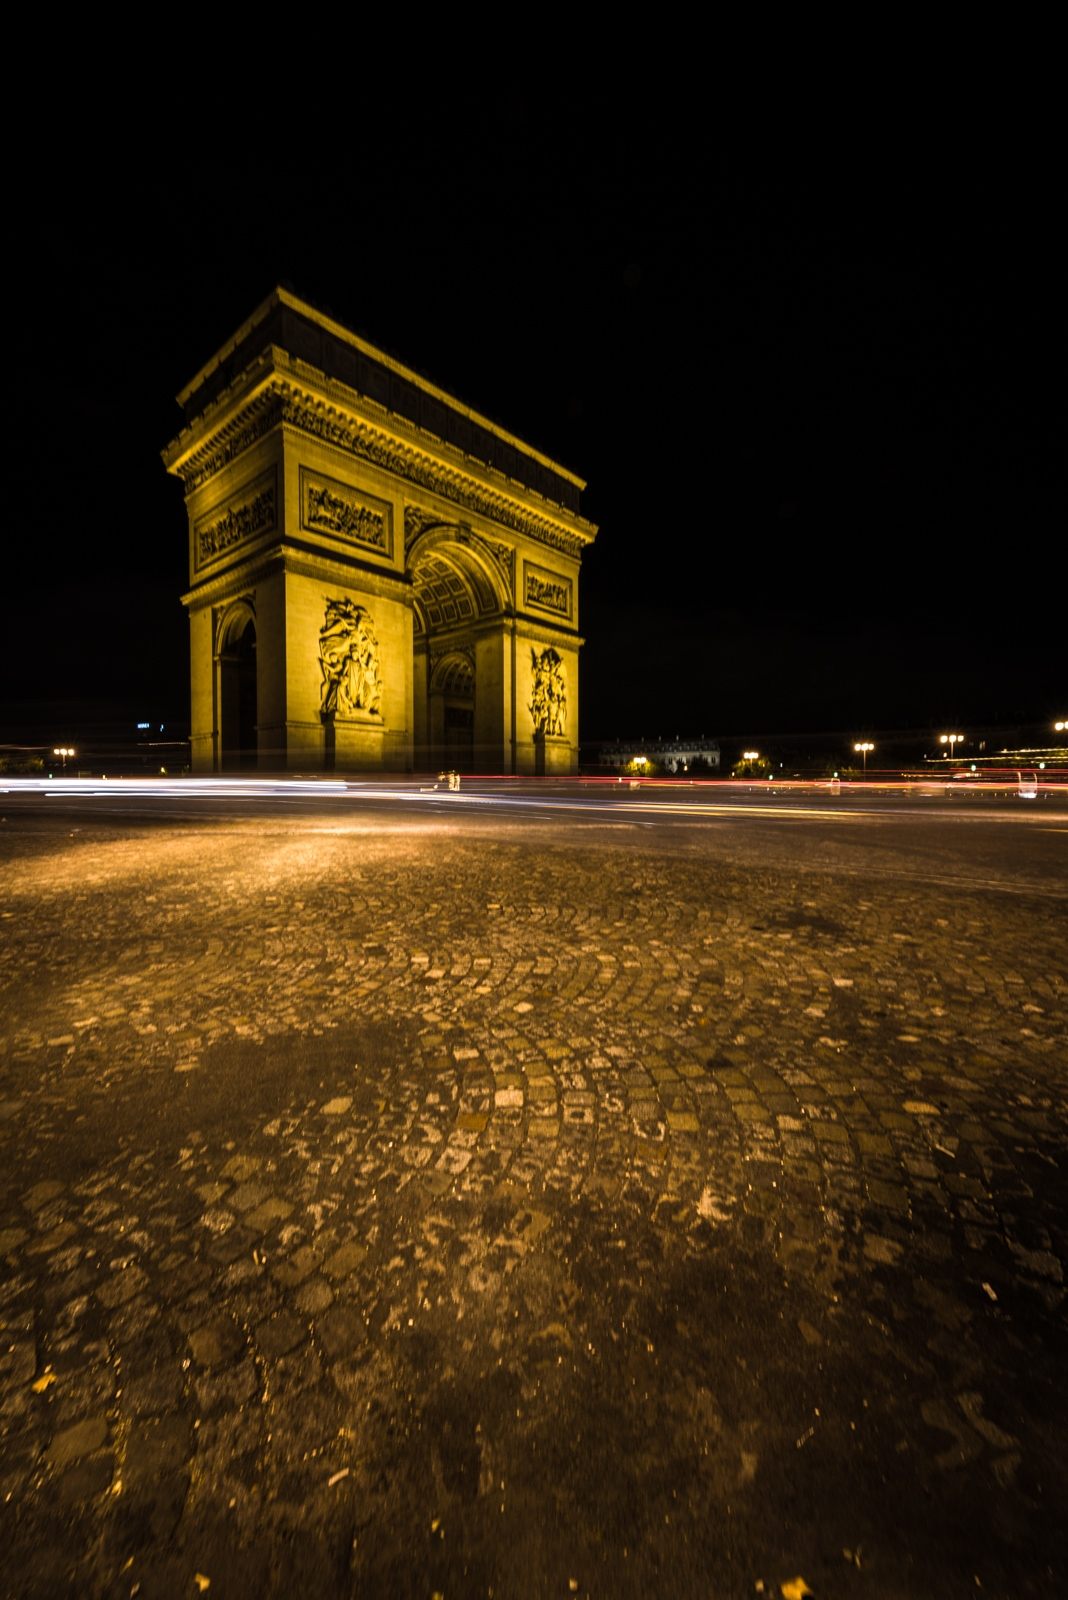 Paris de nuit (2014)